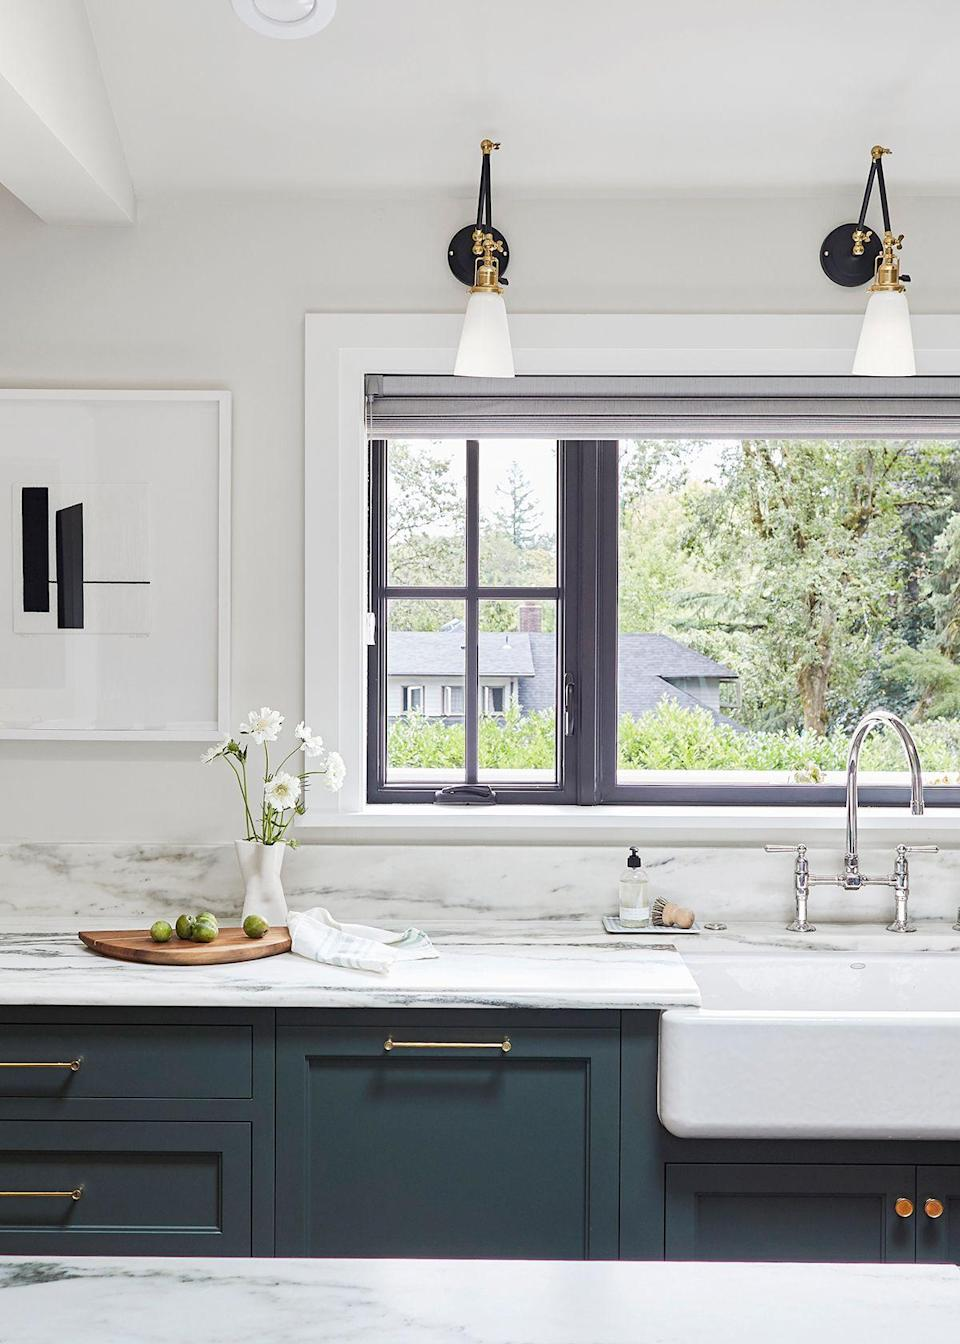 """But let's talk about the color palette because this kitchen really hits a home run in that department. """"I've done a lot of blue kitchens so I wanted to do something different here,"""" says Henderson. In general, they stayed away from gray throughout the home because as Henderson puts it, """"Portland is already so gray so often."""" After testing a million shades of green, they eventually landed on the pewter green. """"I'm so happy with it,"""" exclaimed Henderson. """"It's deep, saturated, milky, and dramatic. It makes a quiet statement. It is a bold color without feeling bold, and it gives a lot of life to the room while keeping it timeless and traditional."""""""